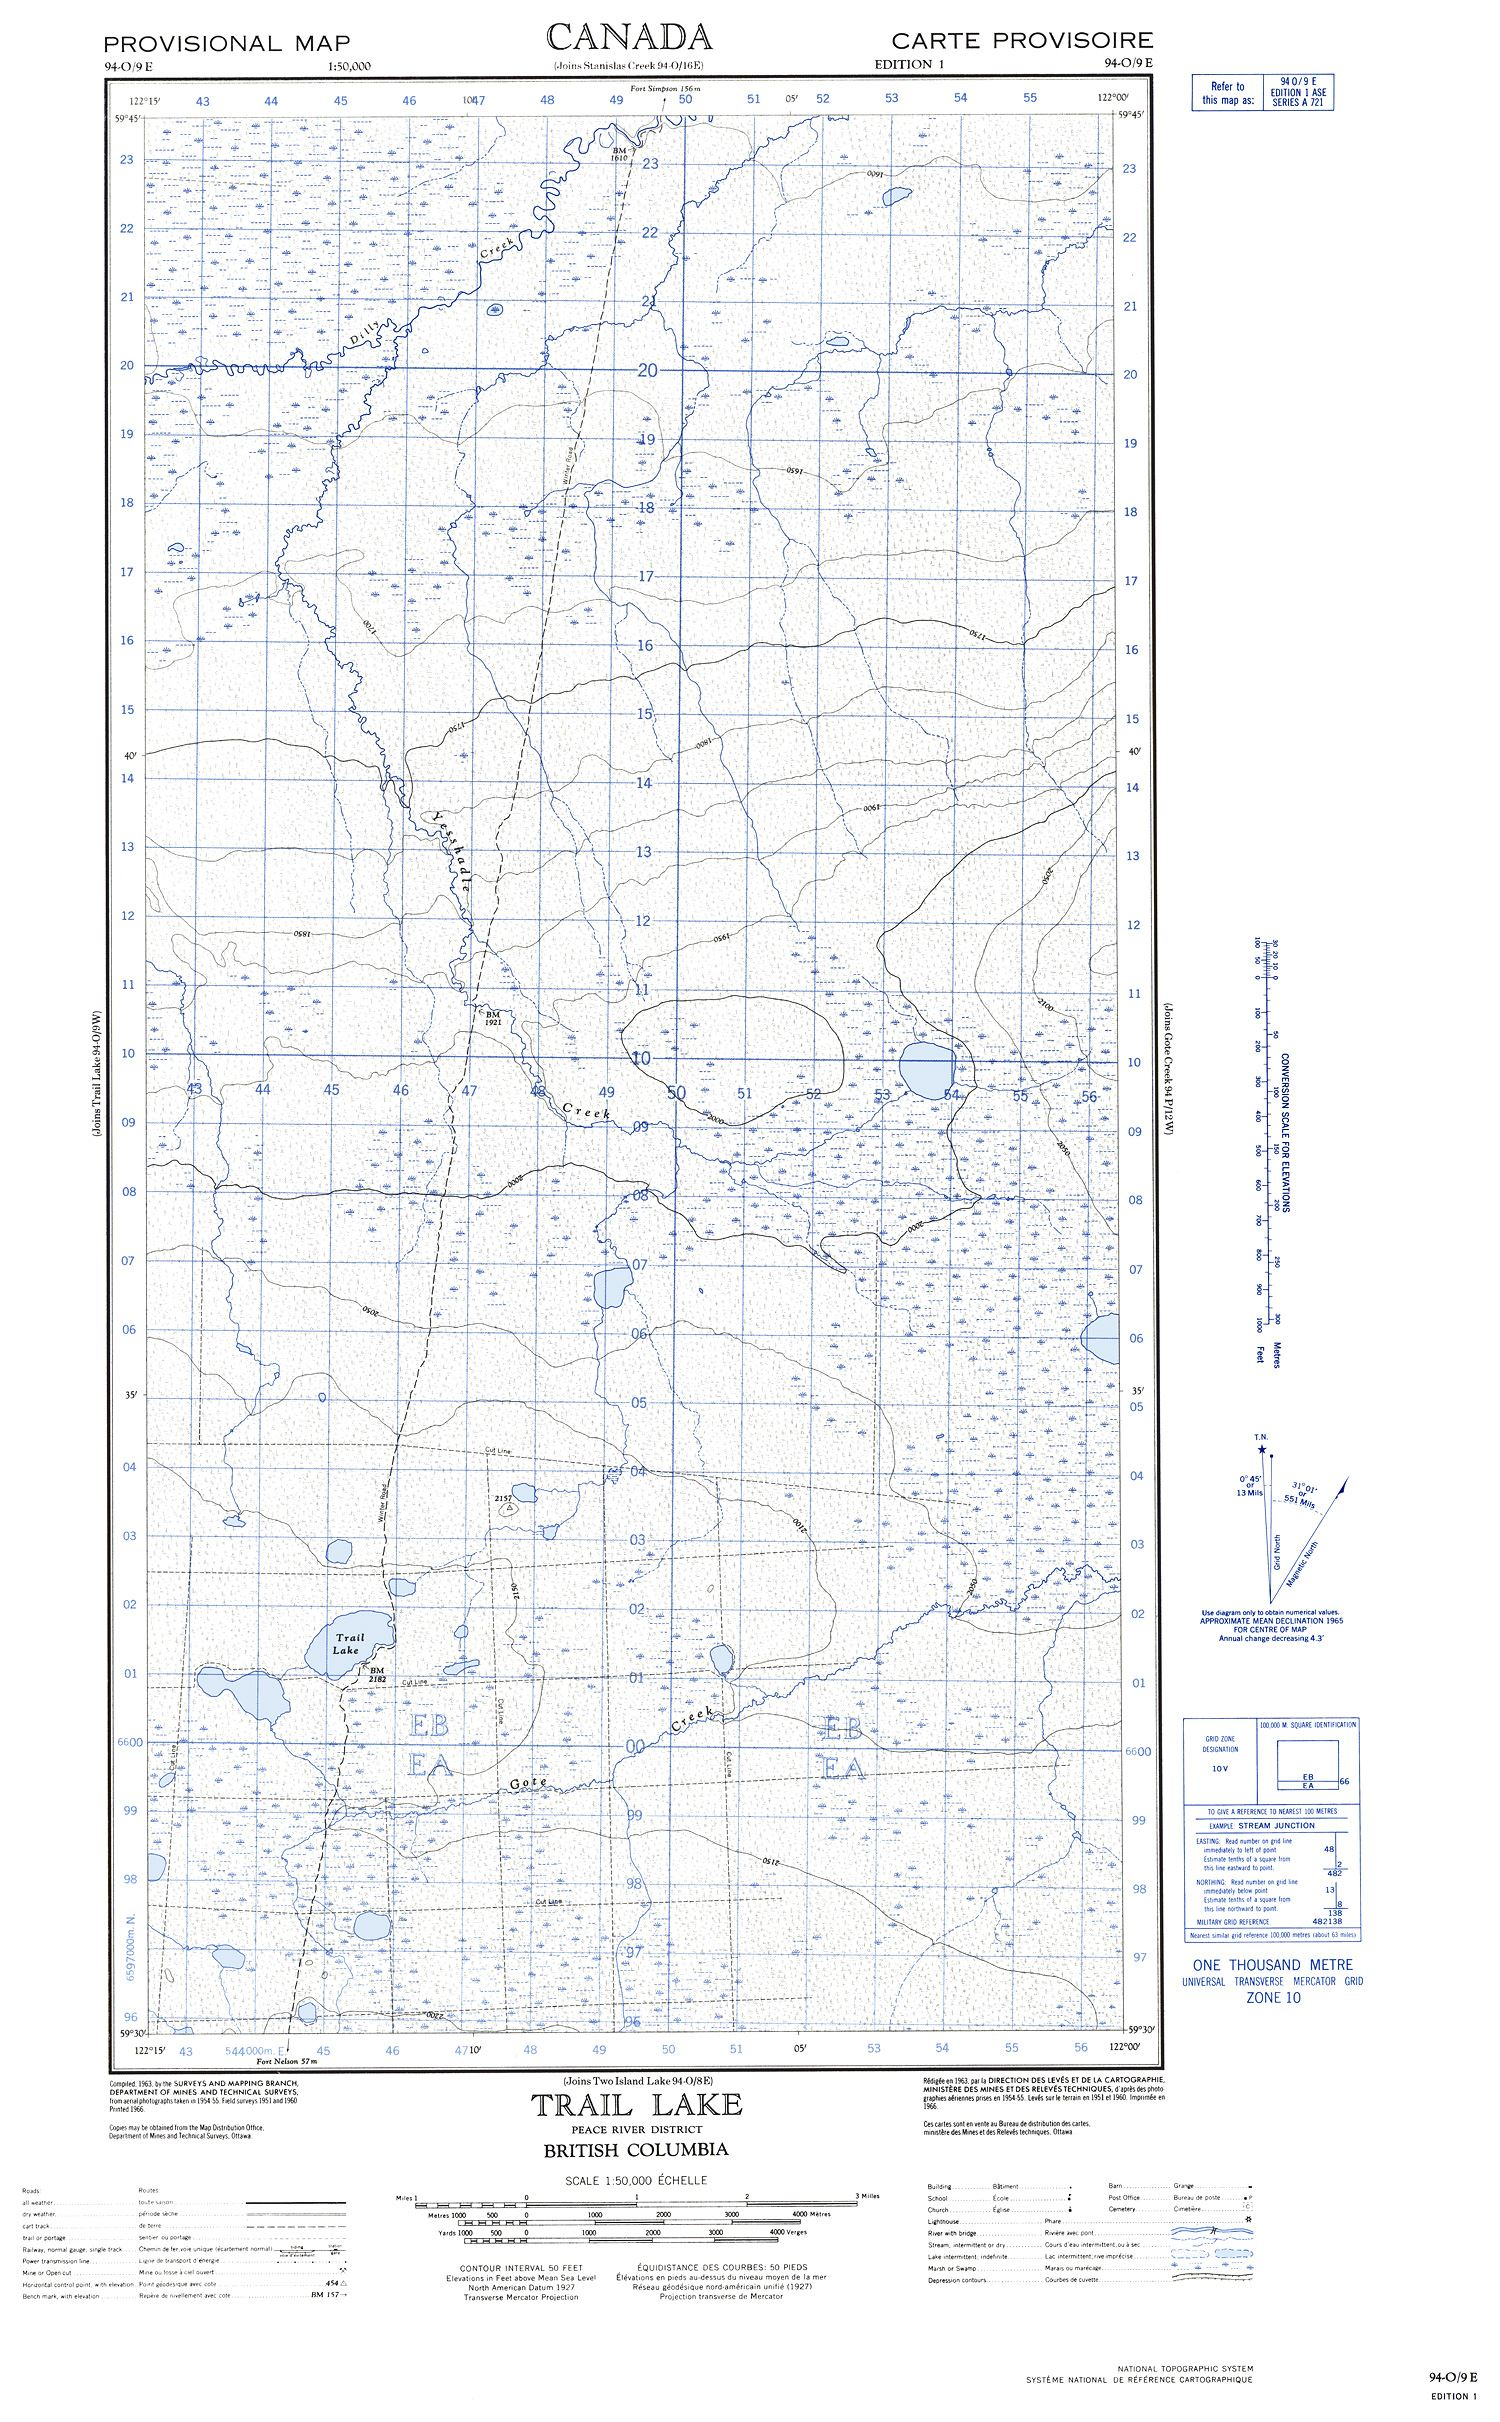 094O09E - TRAIL LAKE - Topographic Map